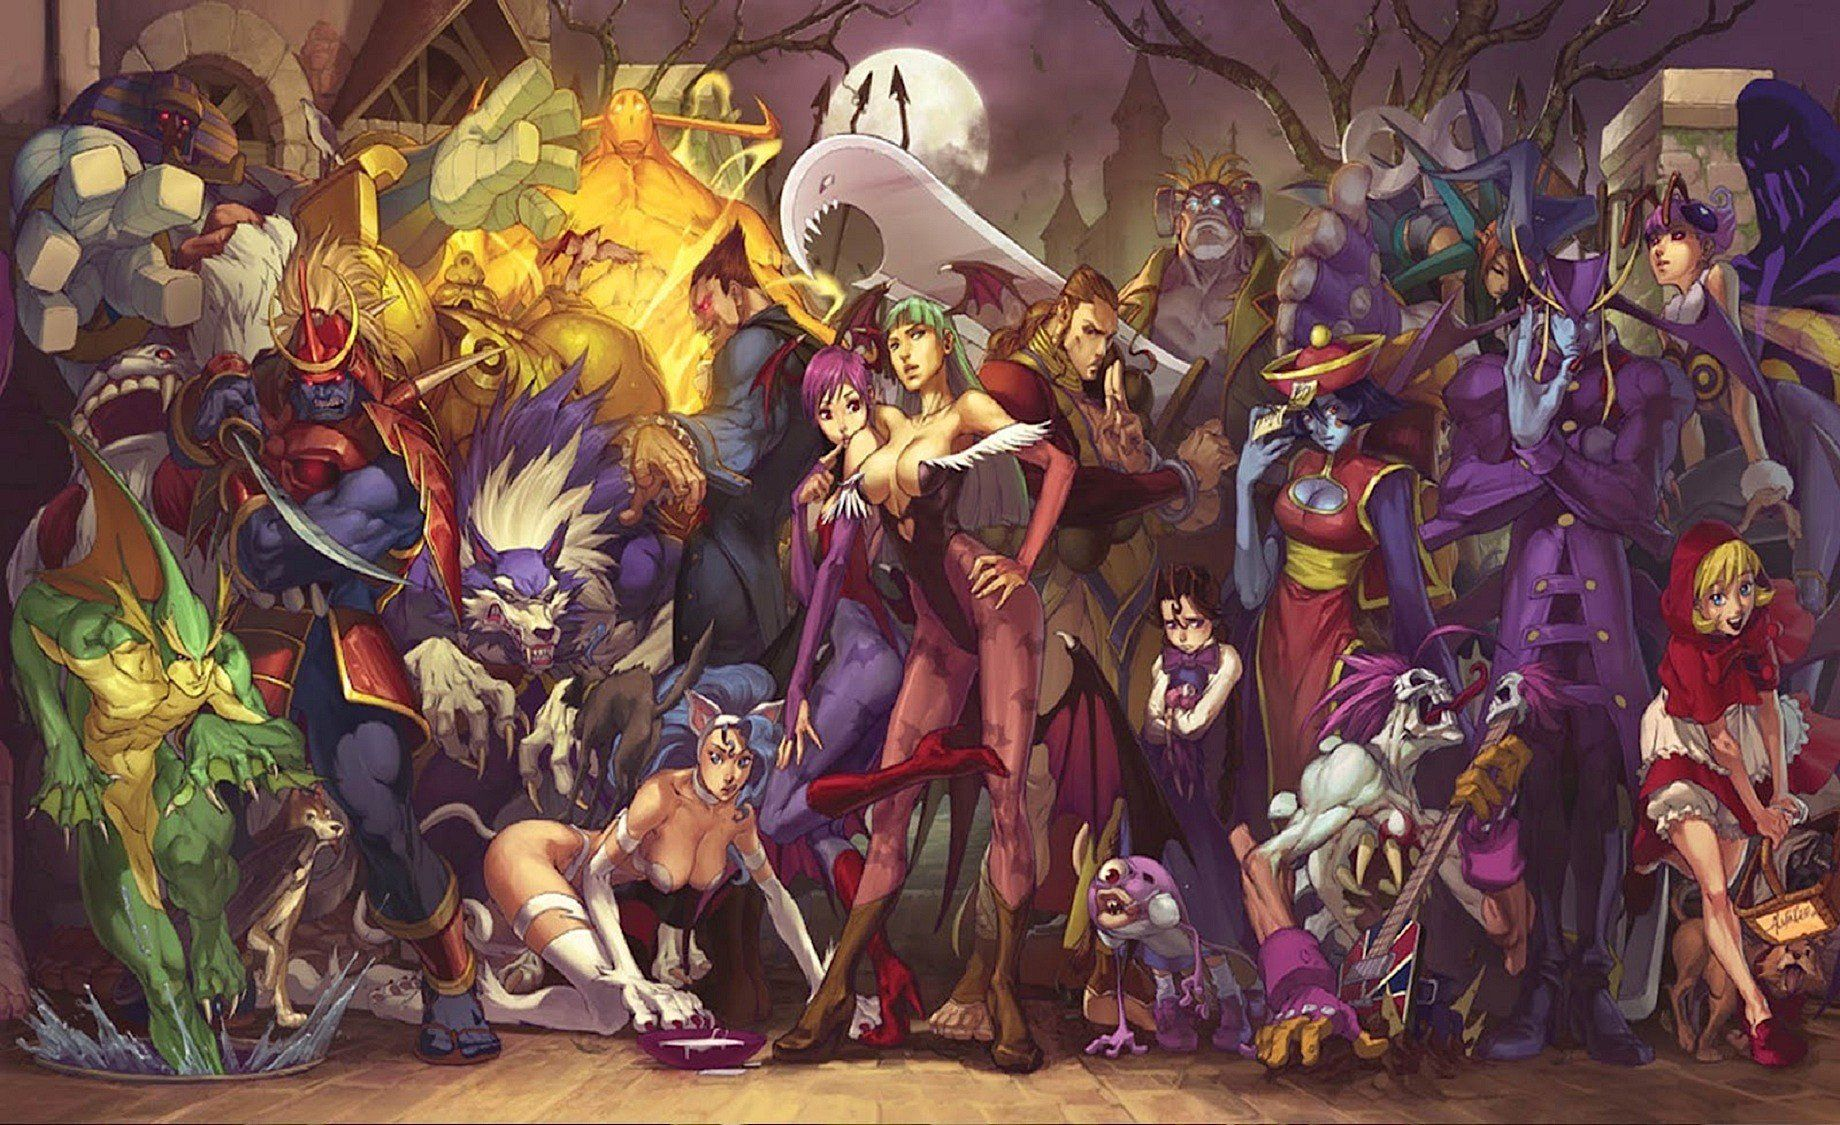 Darkstalkers Vanpaia Vampire Fighting Capcom Anime Gothic Fantasy